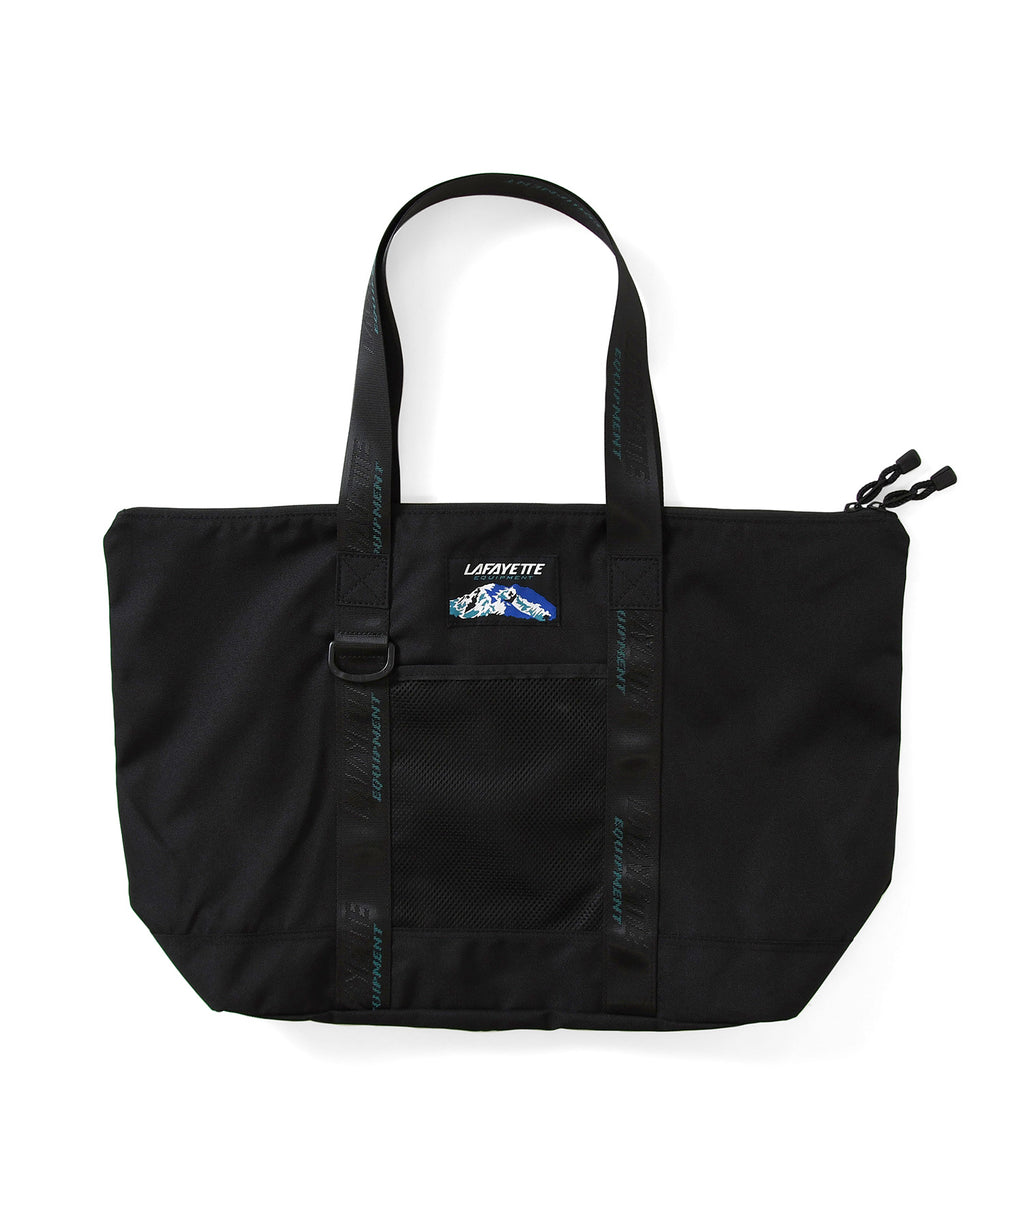 Lafayette EQUIPMENT LOGO NYLON TOTE BAG LS201503 BLACK